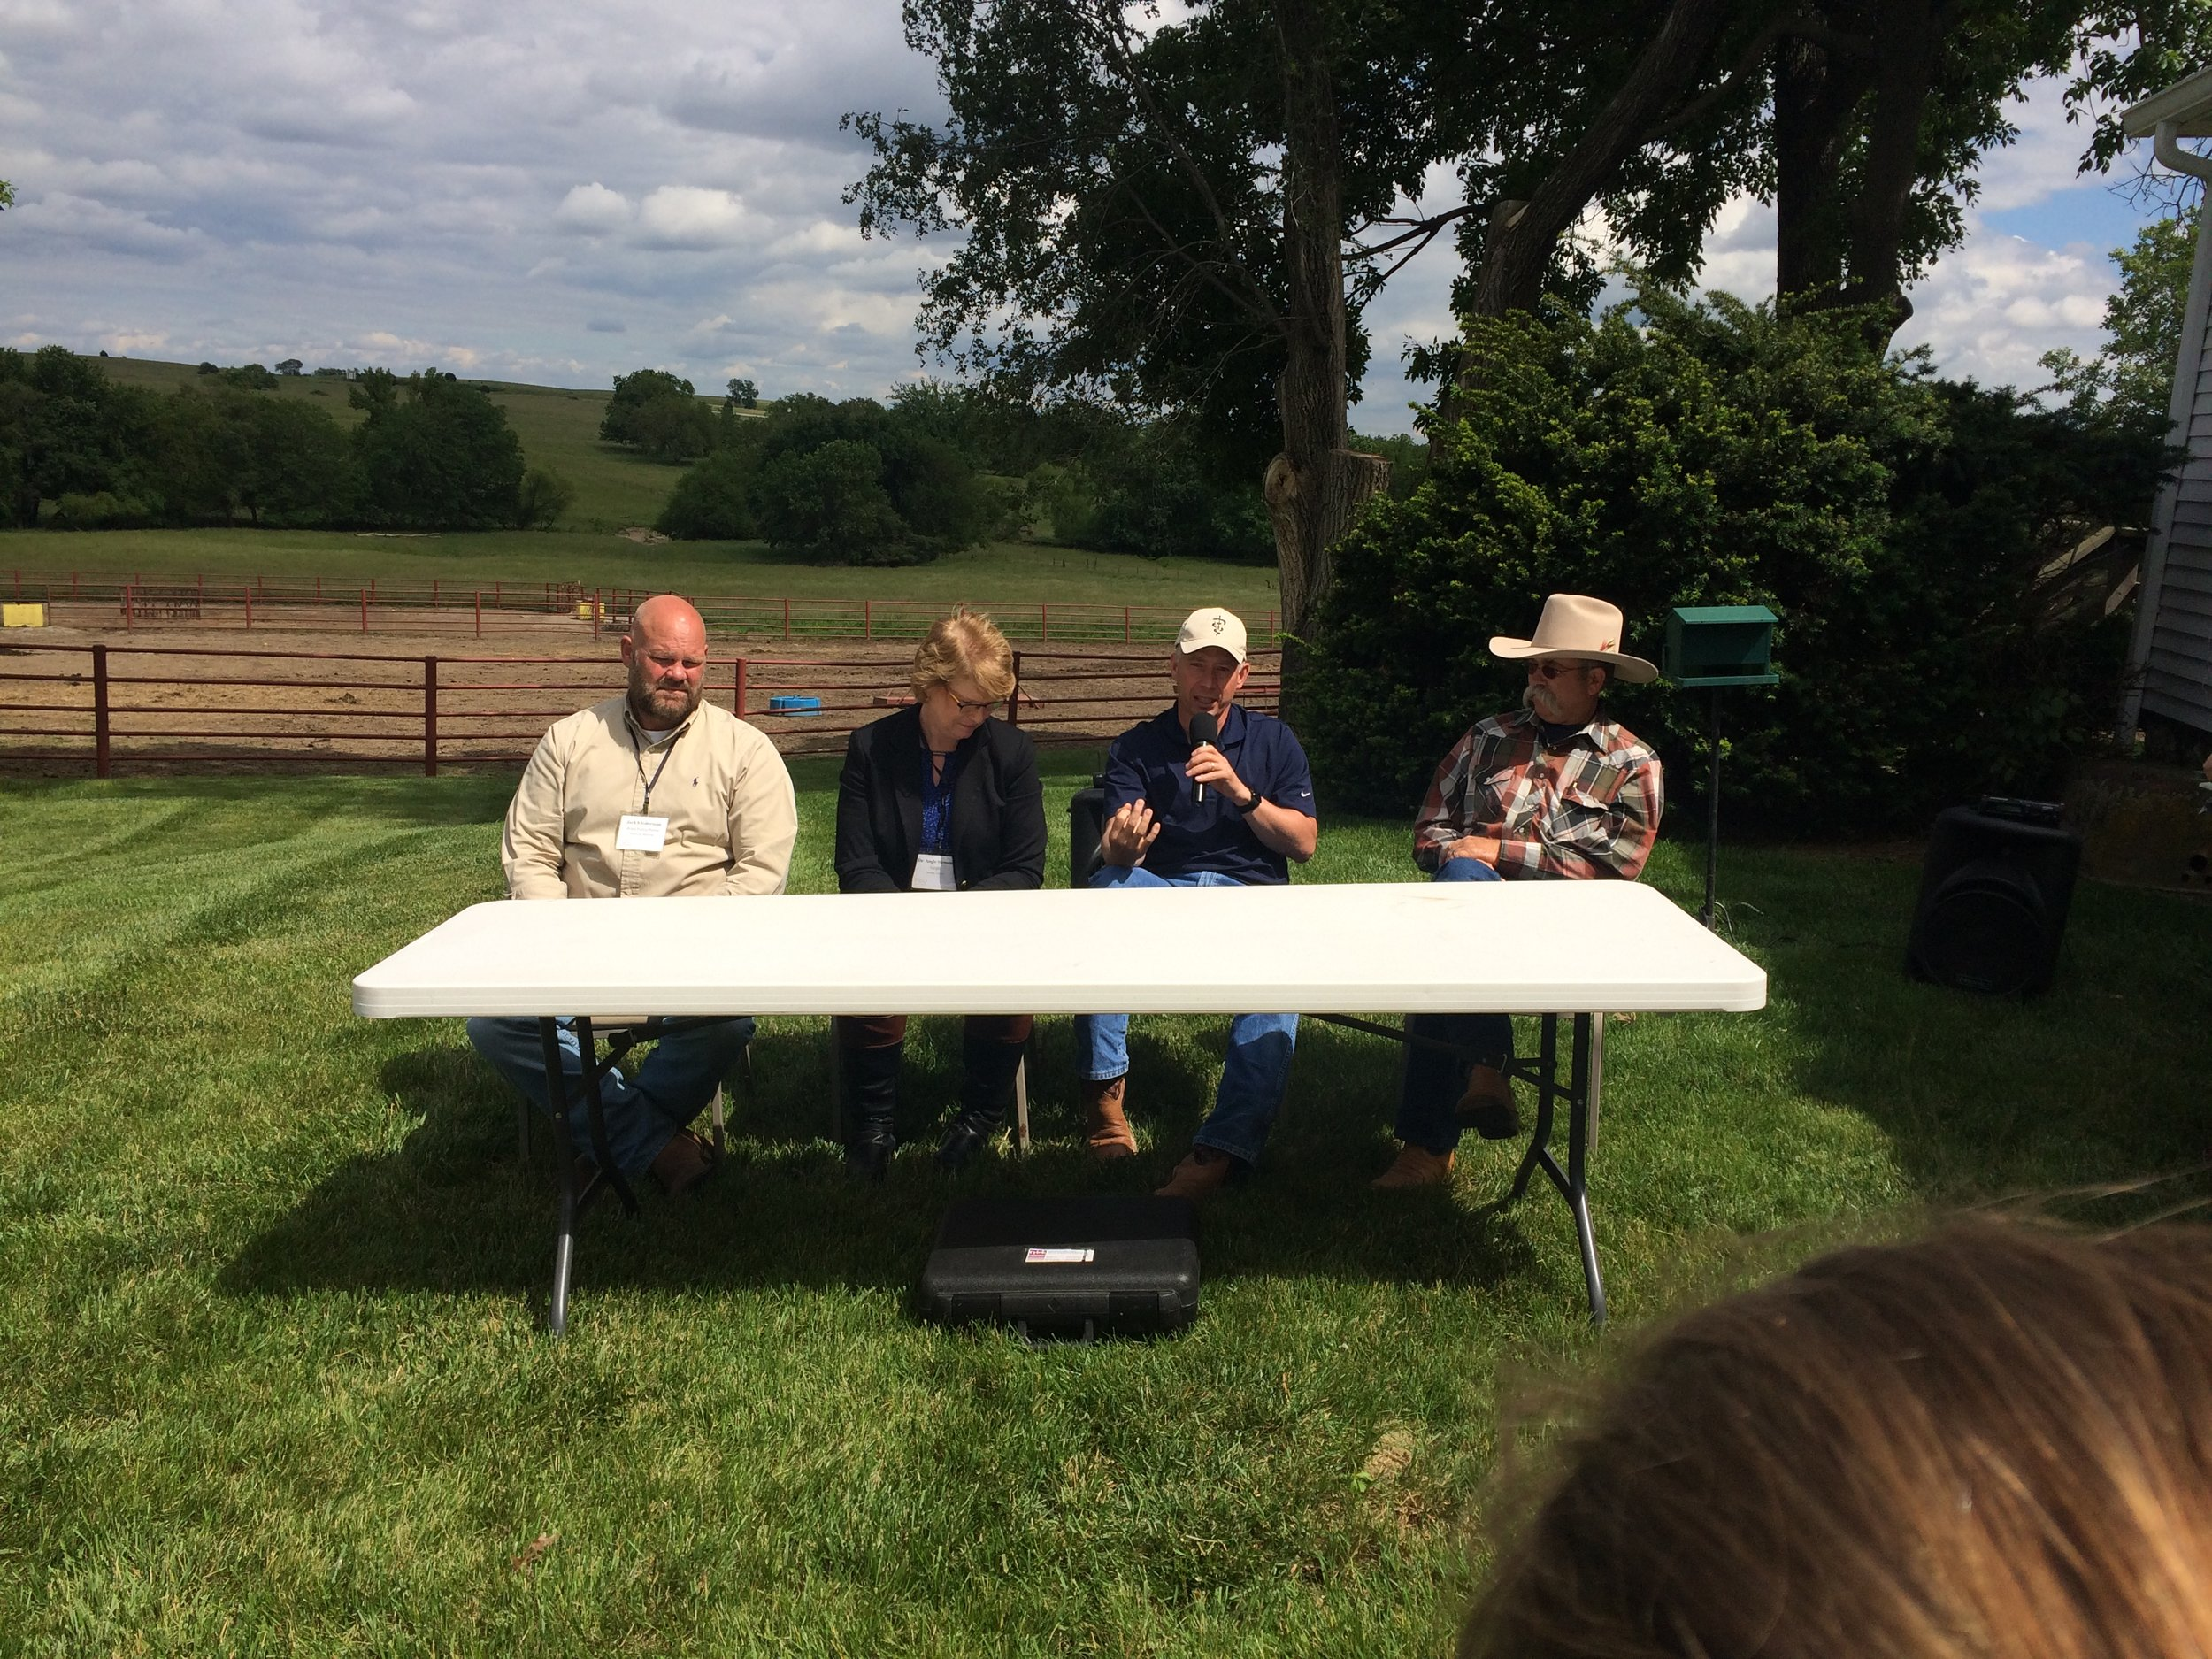 The beef panel we had the privilege of asking questions to